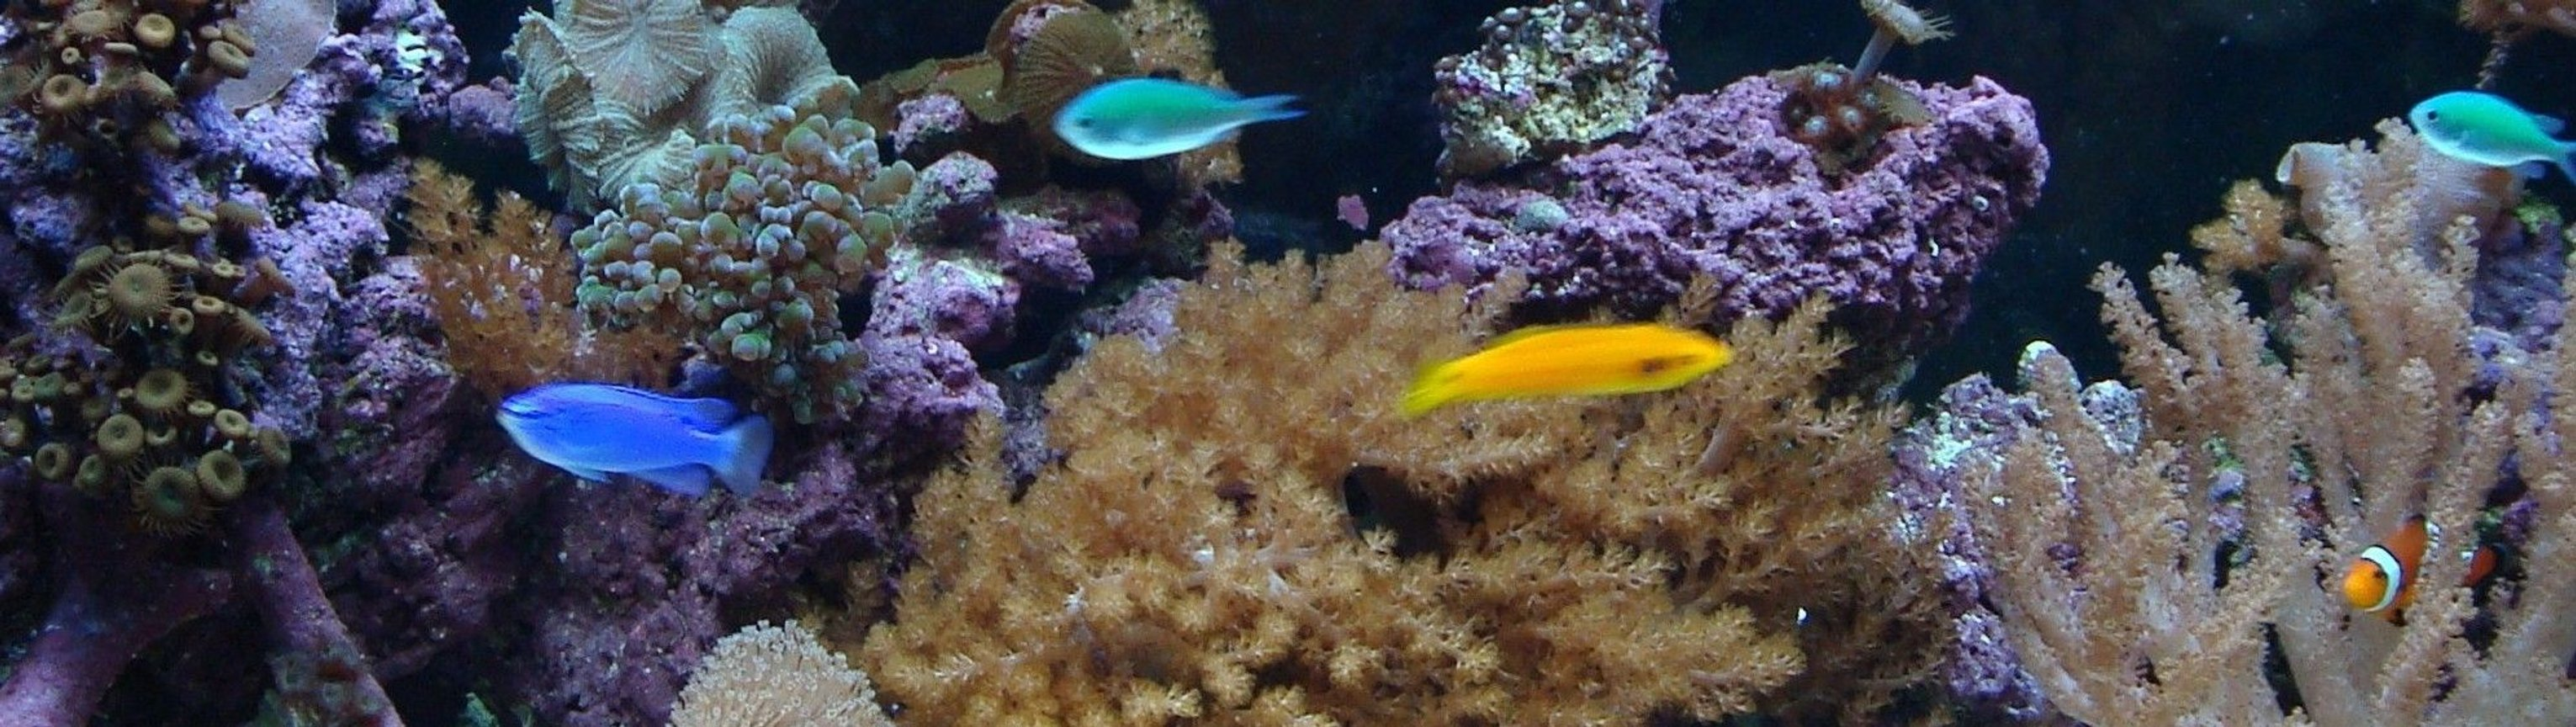 saltwater fish - chromis viridis - blue/green reef chromis stocking in 125 gallons tank - 75 gallon reef